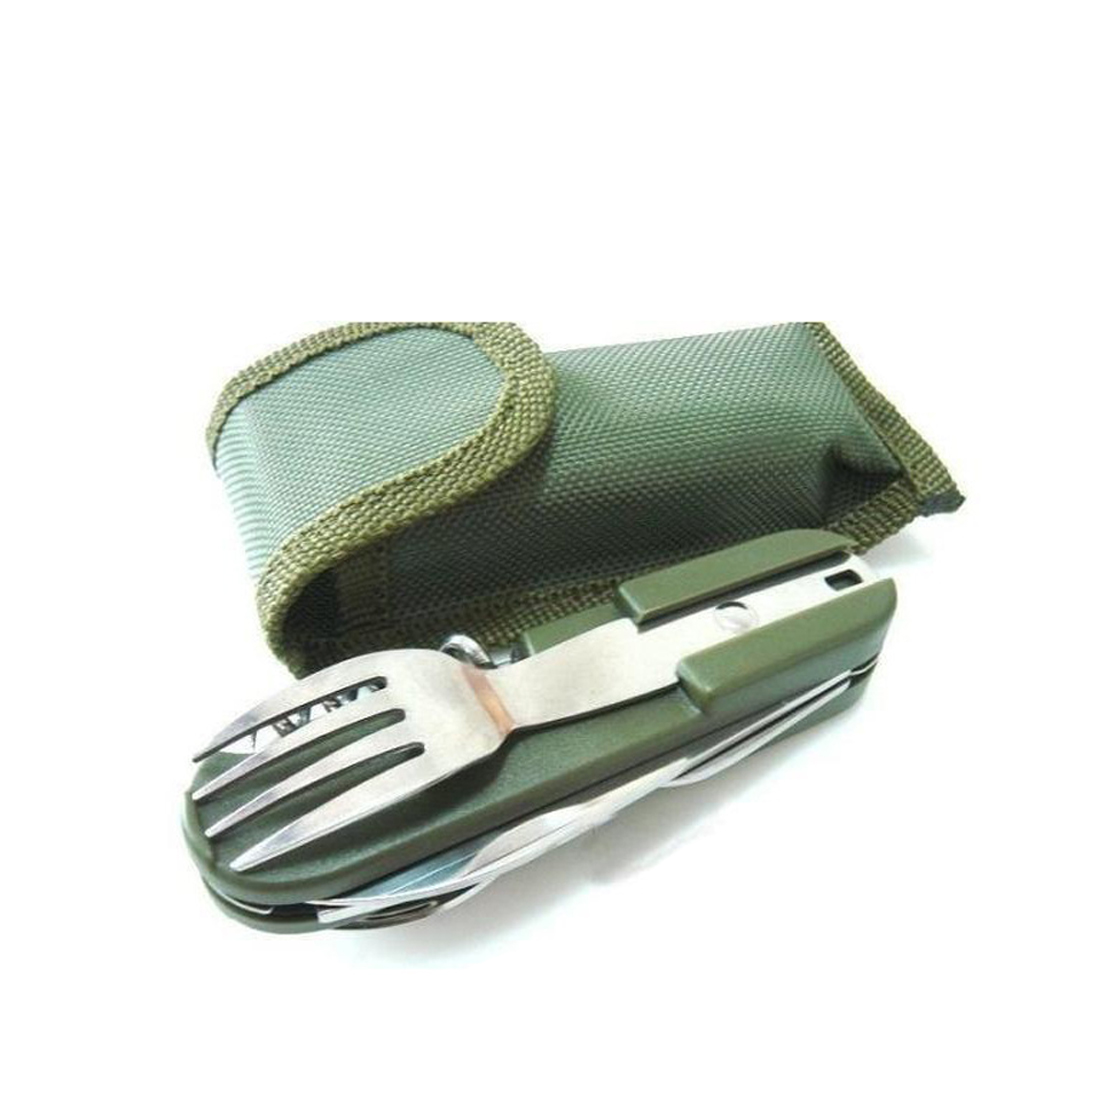 Hot Sell Army Green Folding Portable Stainless Steel Camping Picnic Cutlery Knife Fork Spoon Bottle Opener